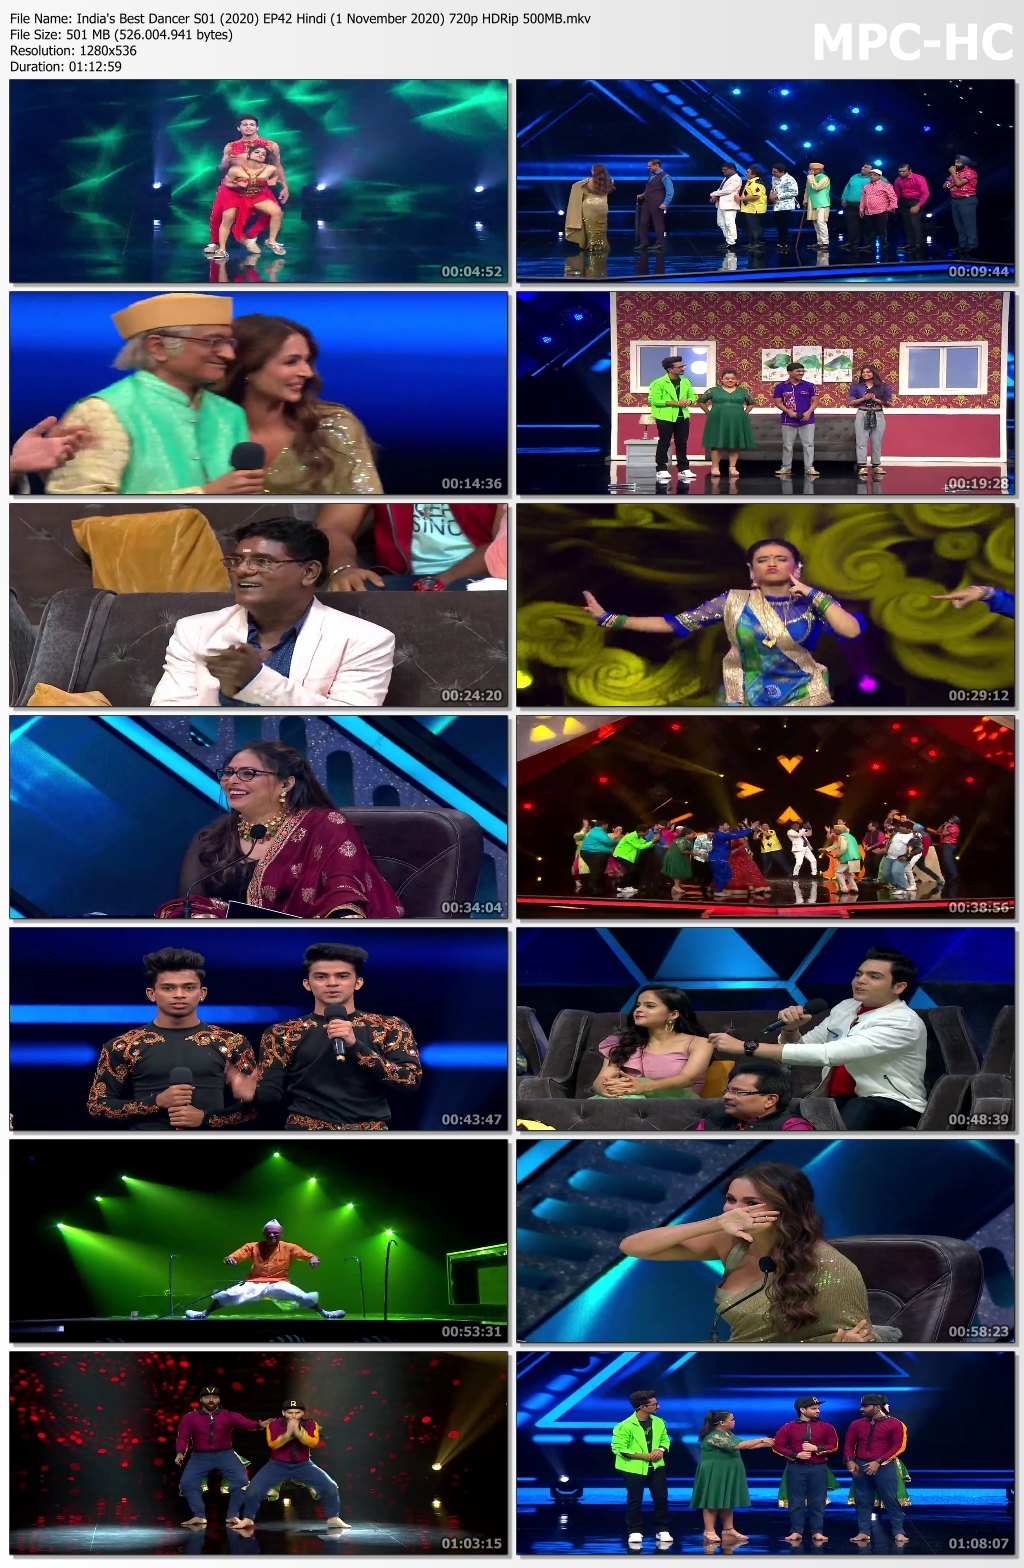 India-s-Best-Dancer-S01-2020-EP42-Hindi-1-November-2020-720p-HDRip-500-MB-mkv-thumbs